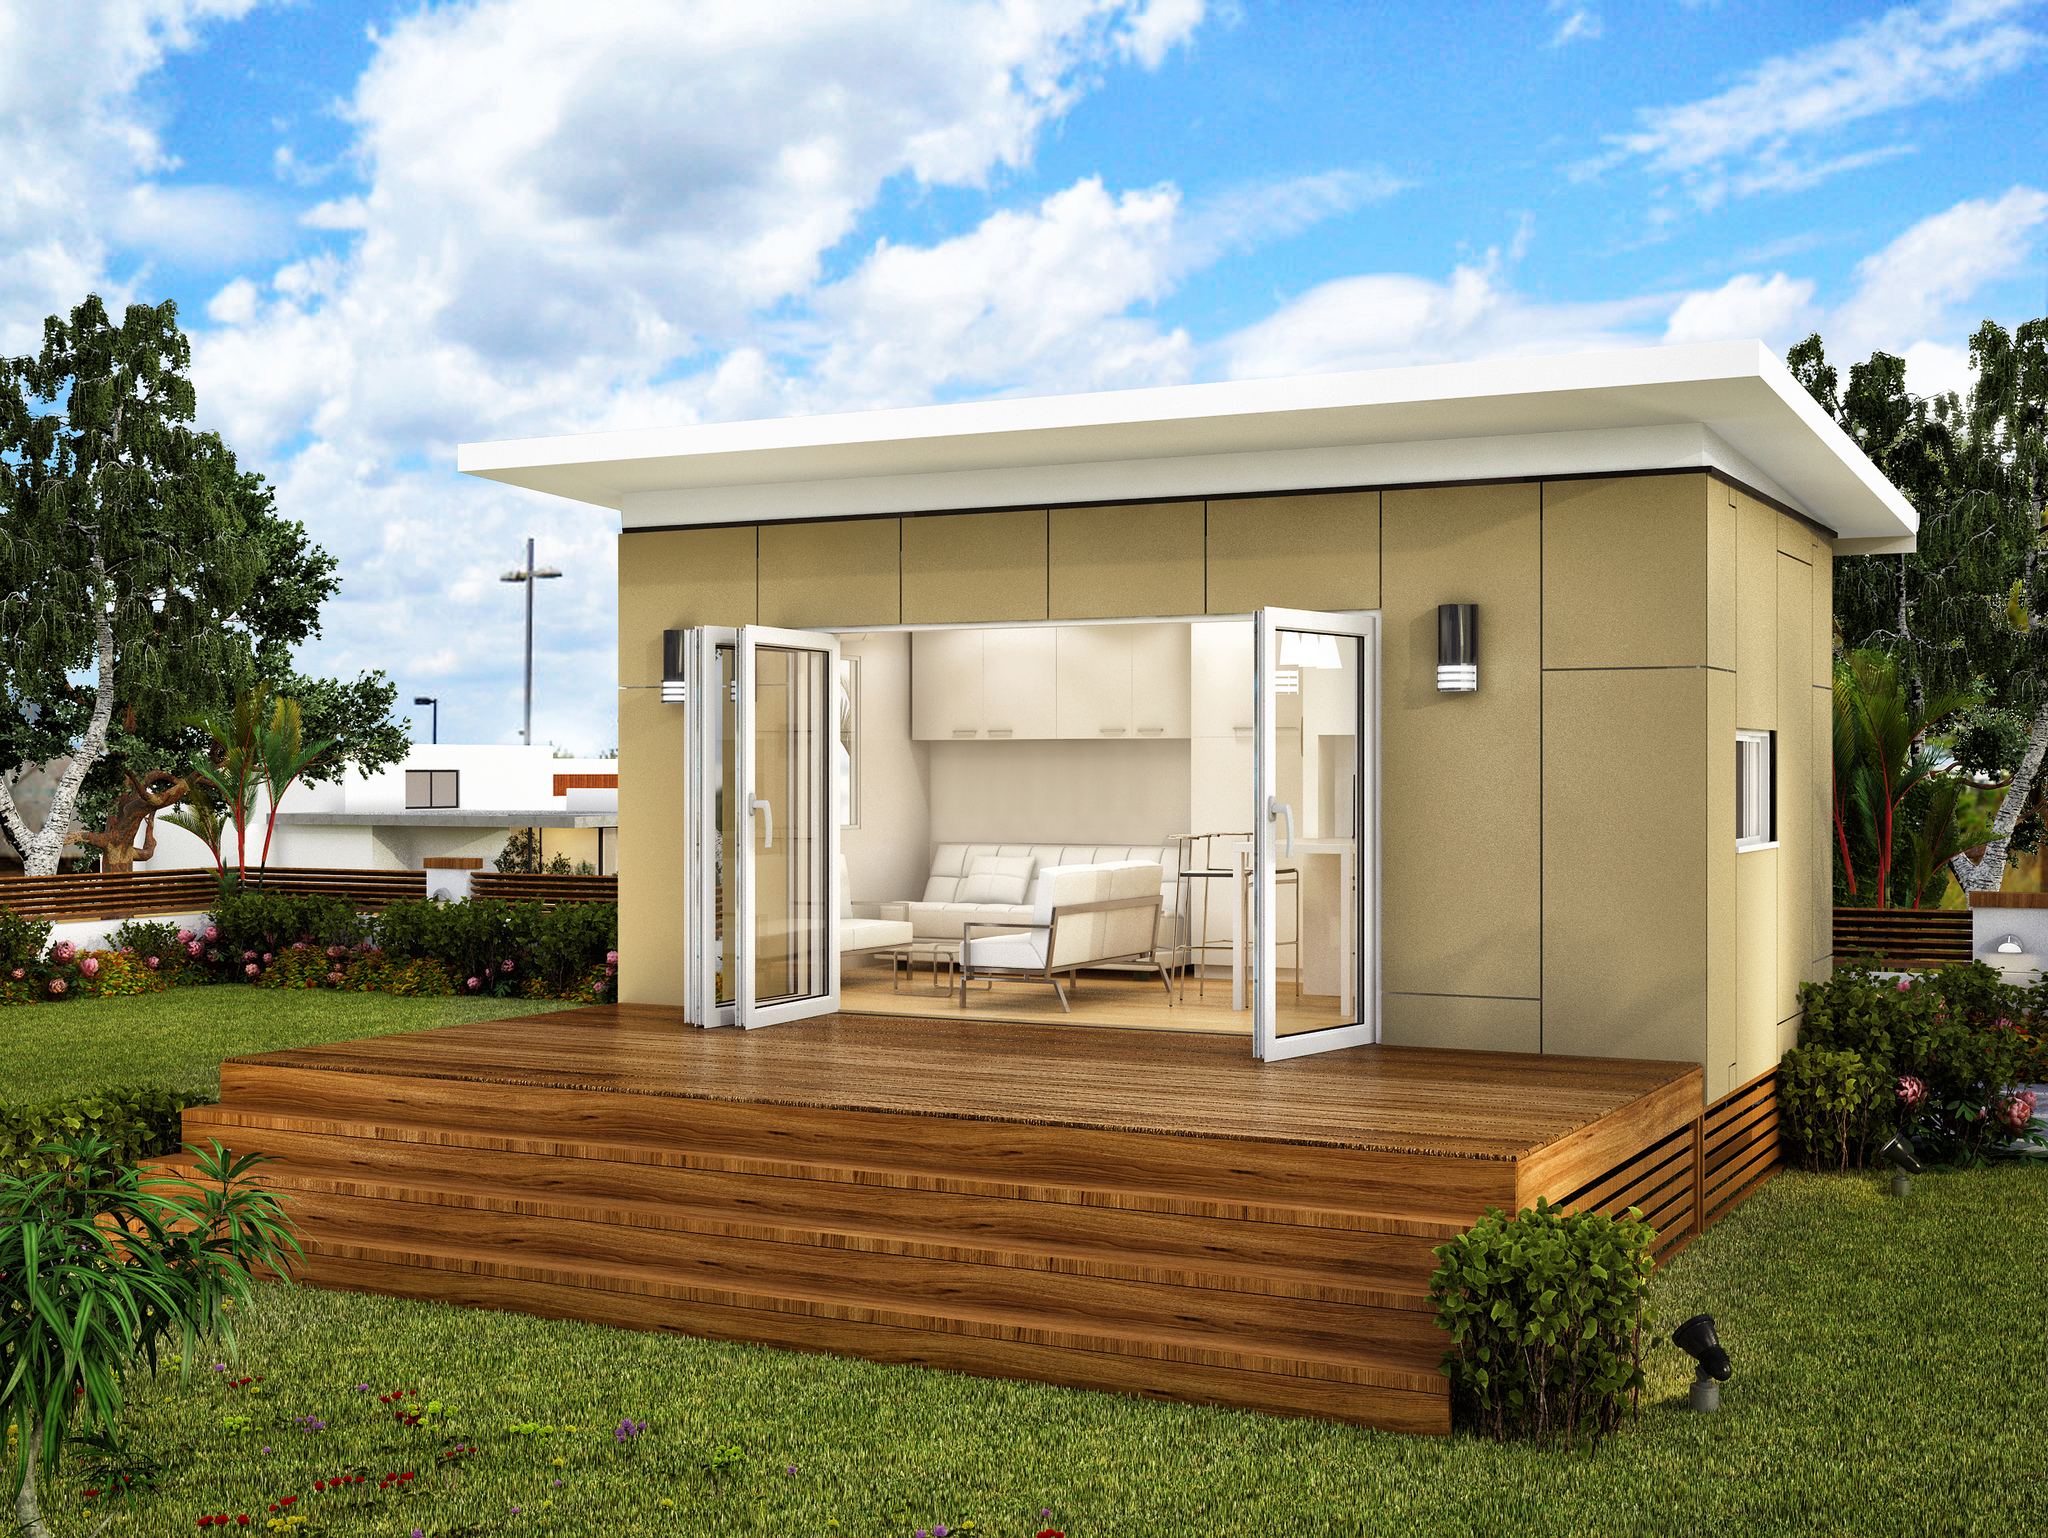 10 More Container House Design Ideas Living